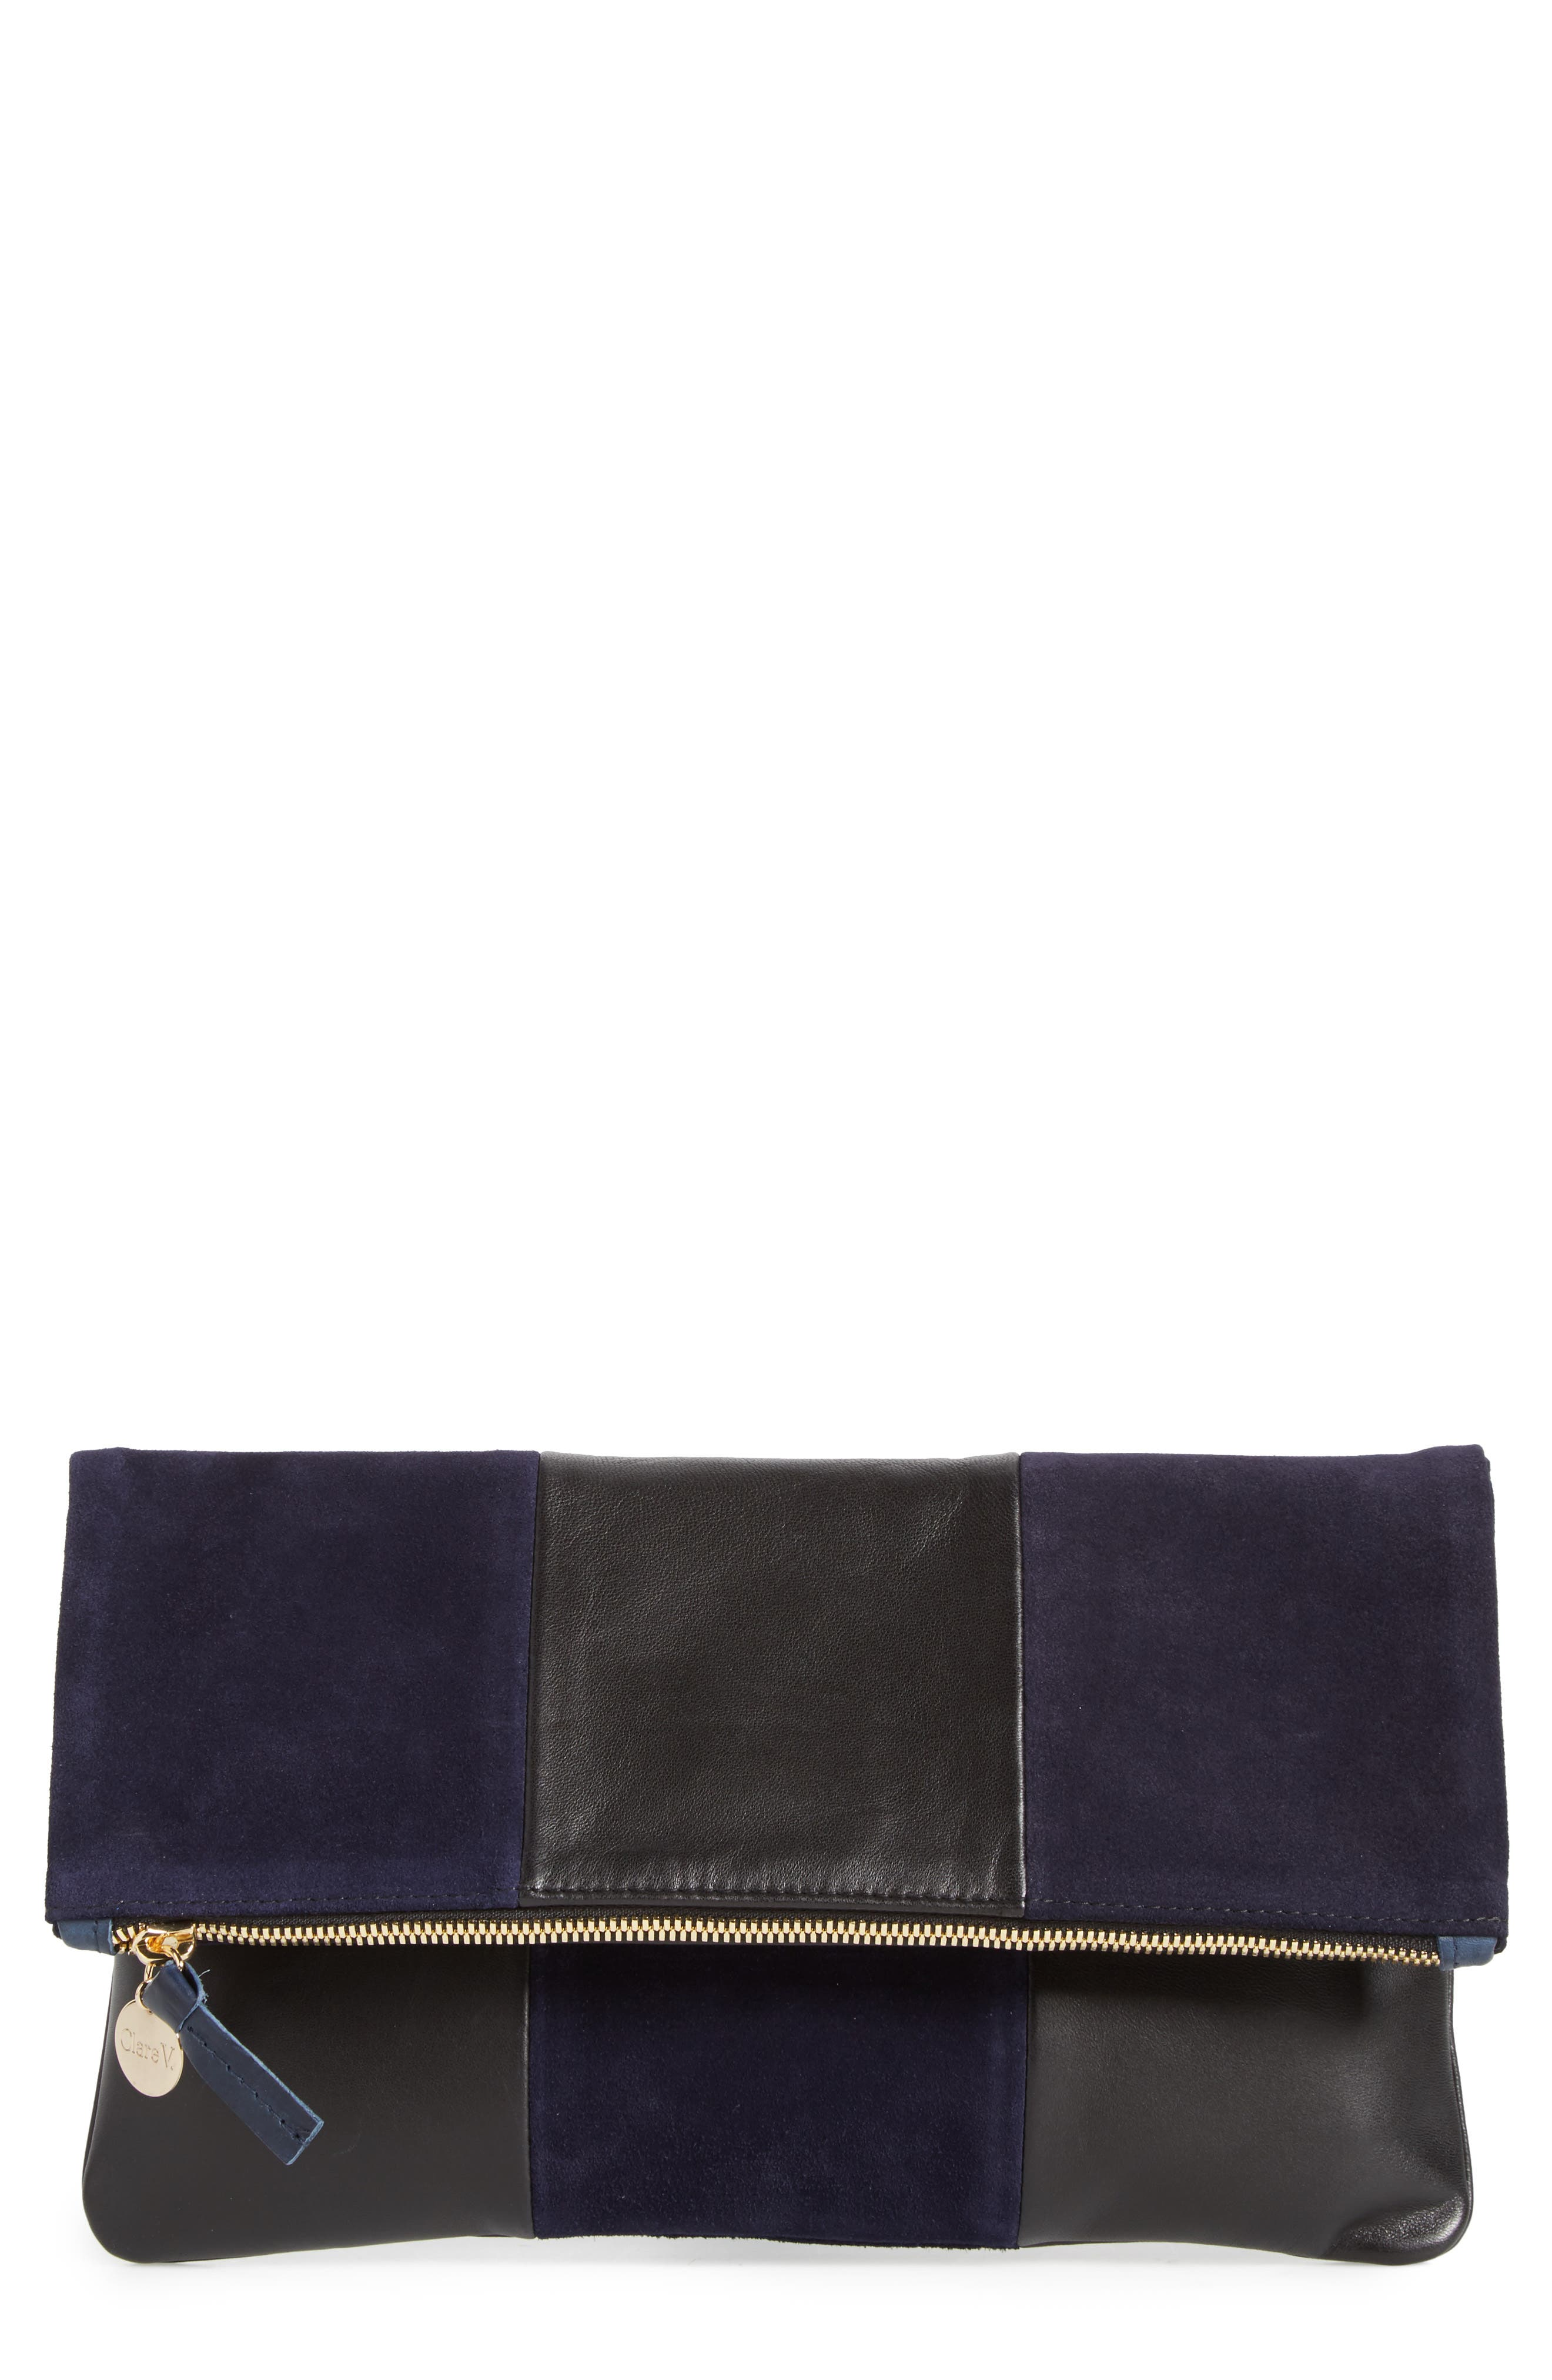 Clare V. Leather & Suede Foldover Clutch